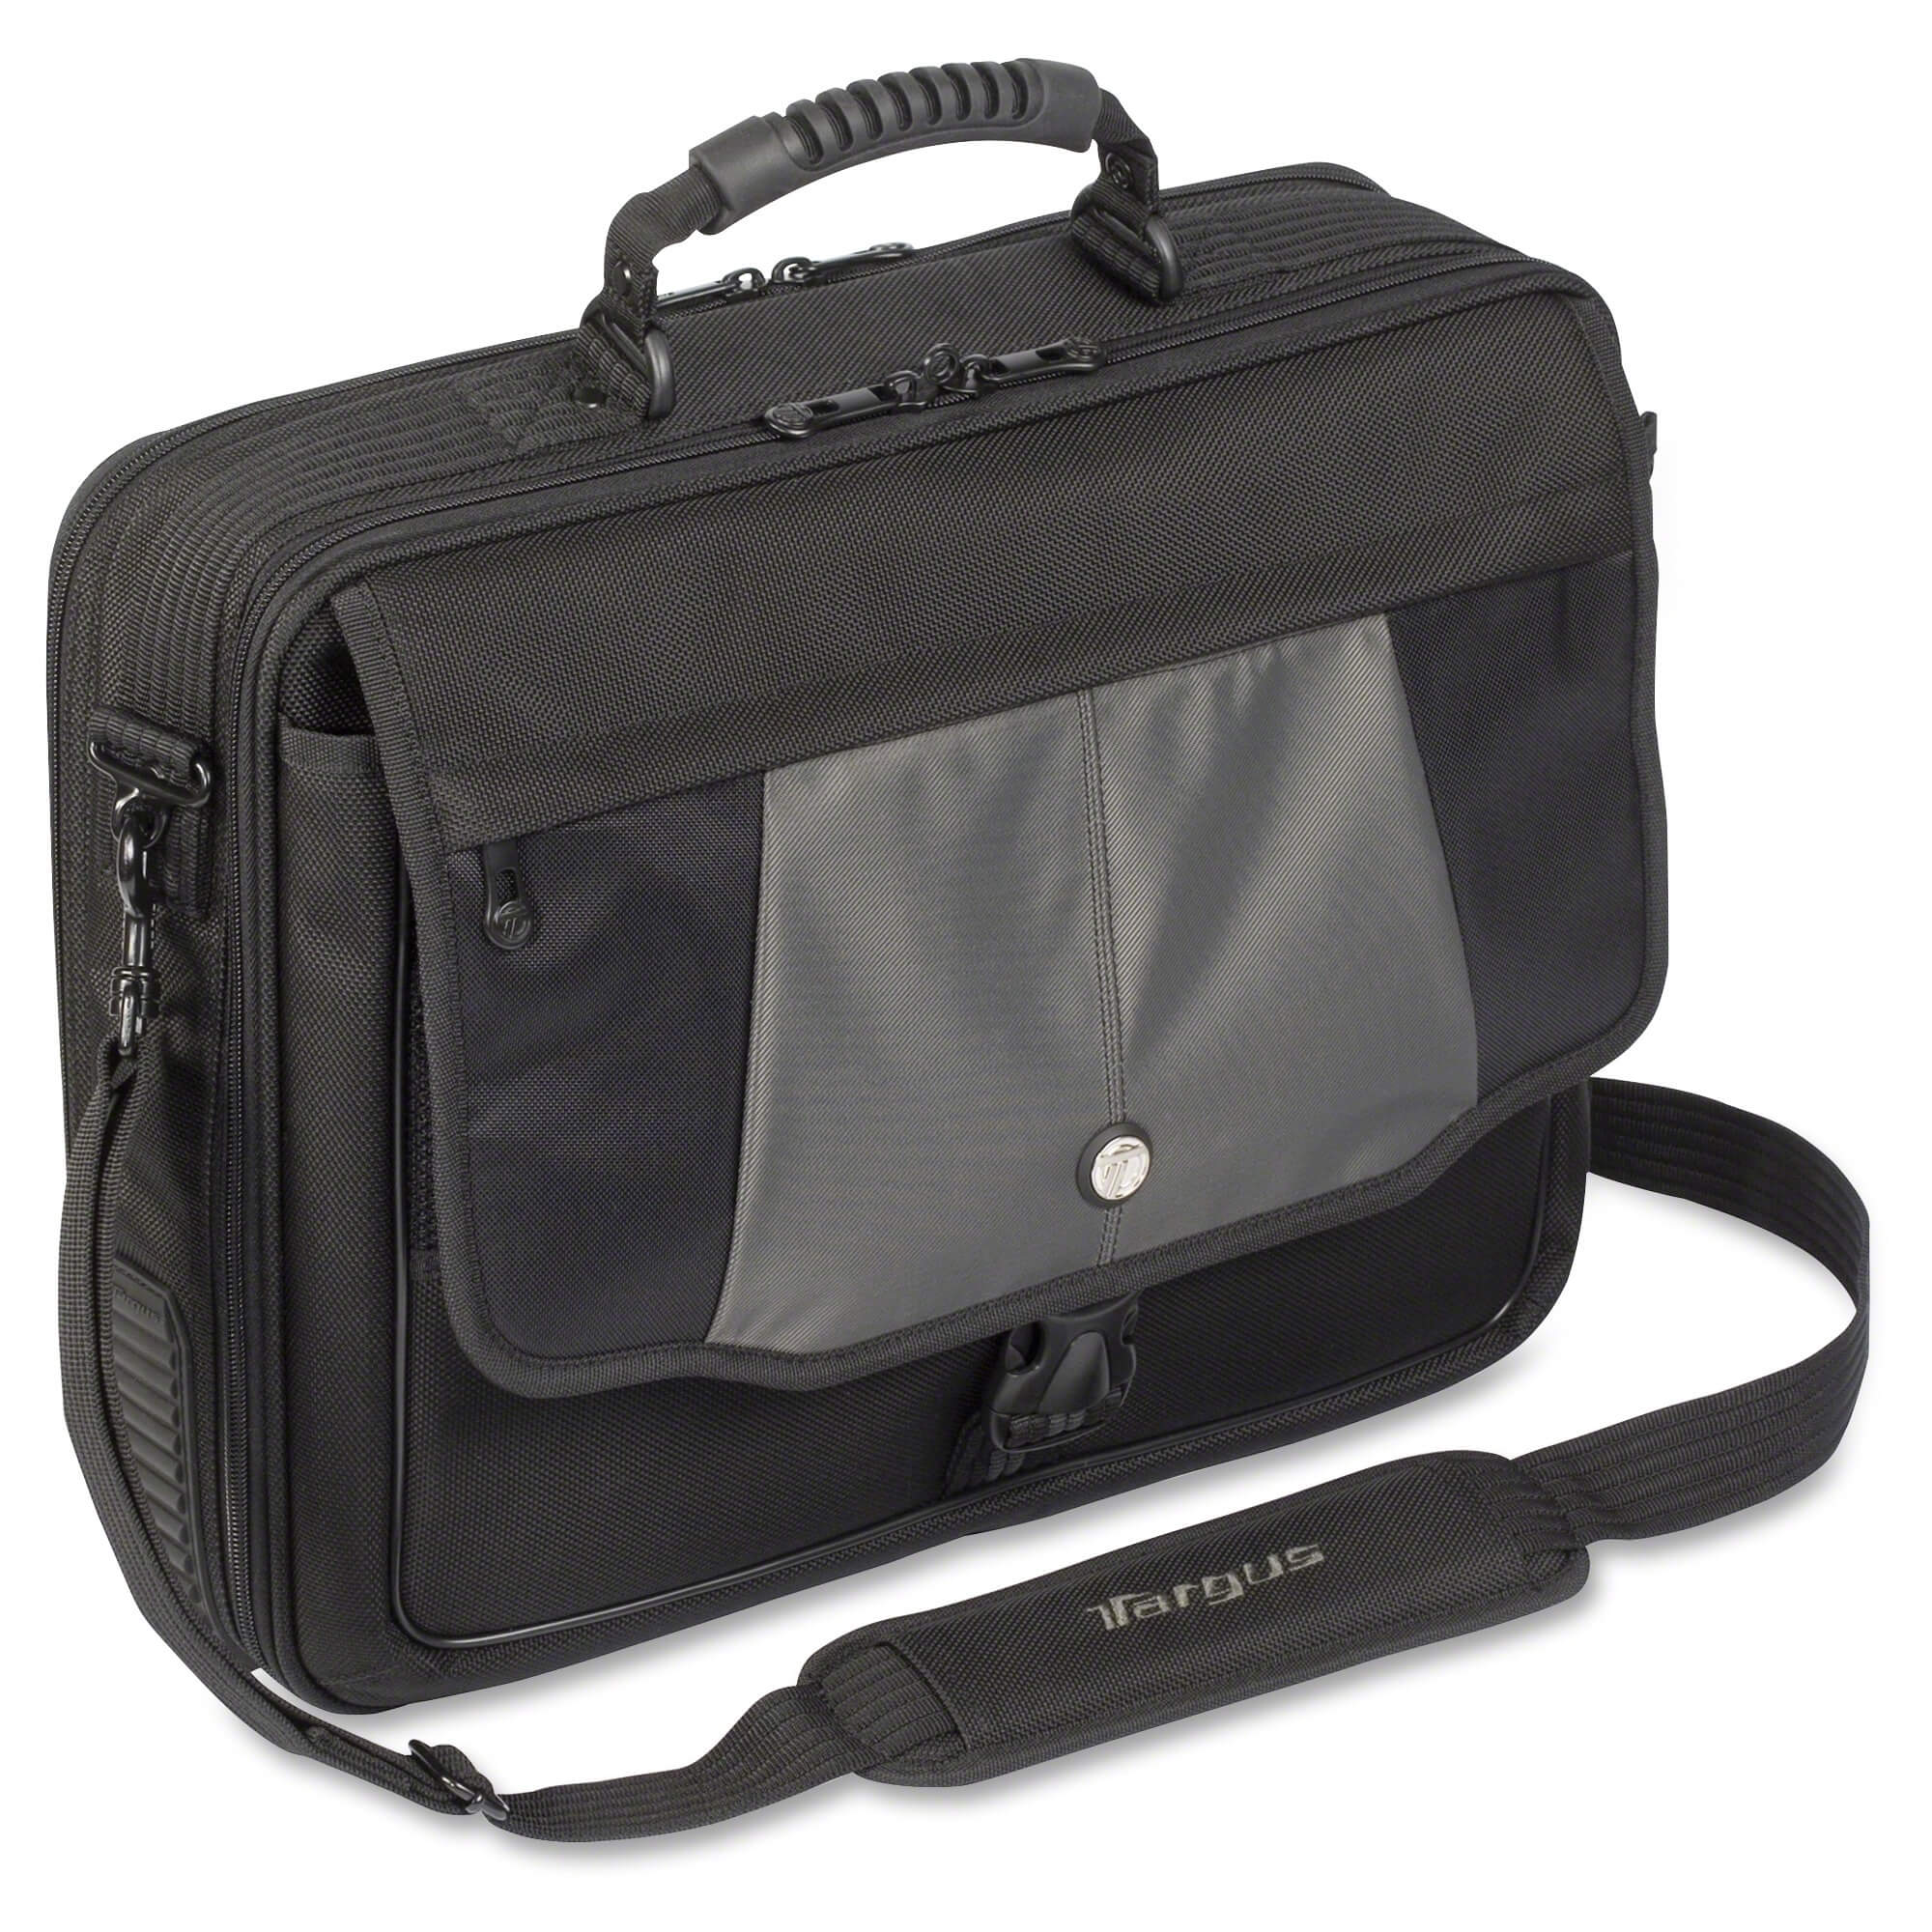 TRG CASE MESSENGER 13.3